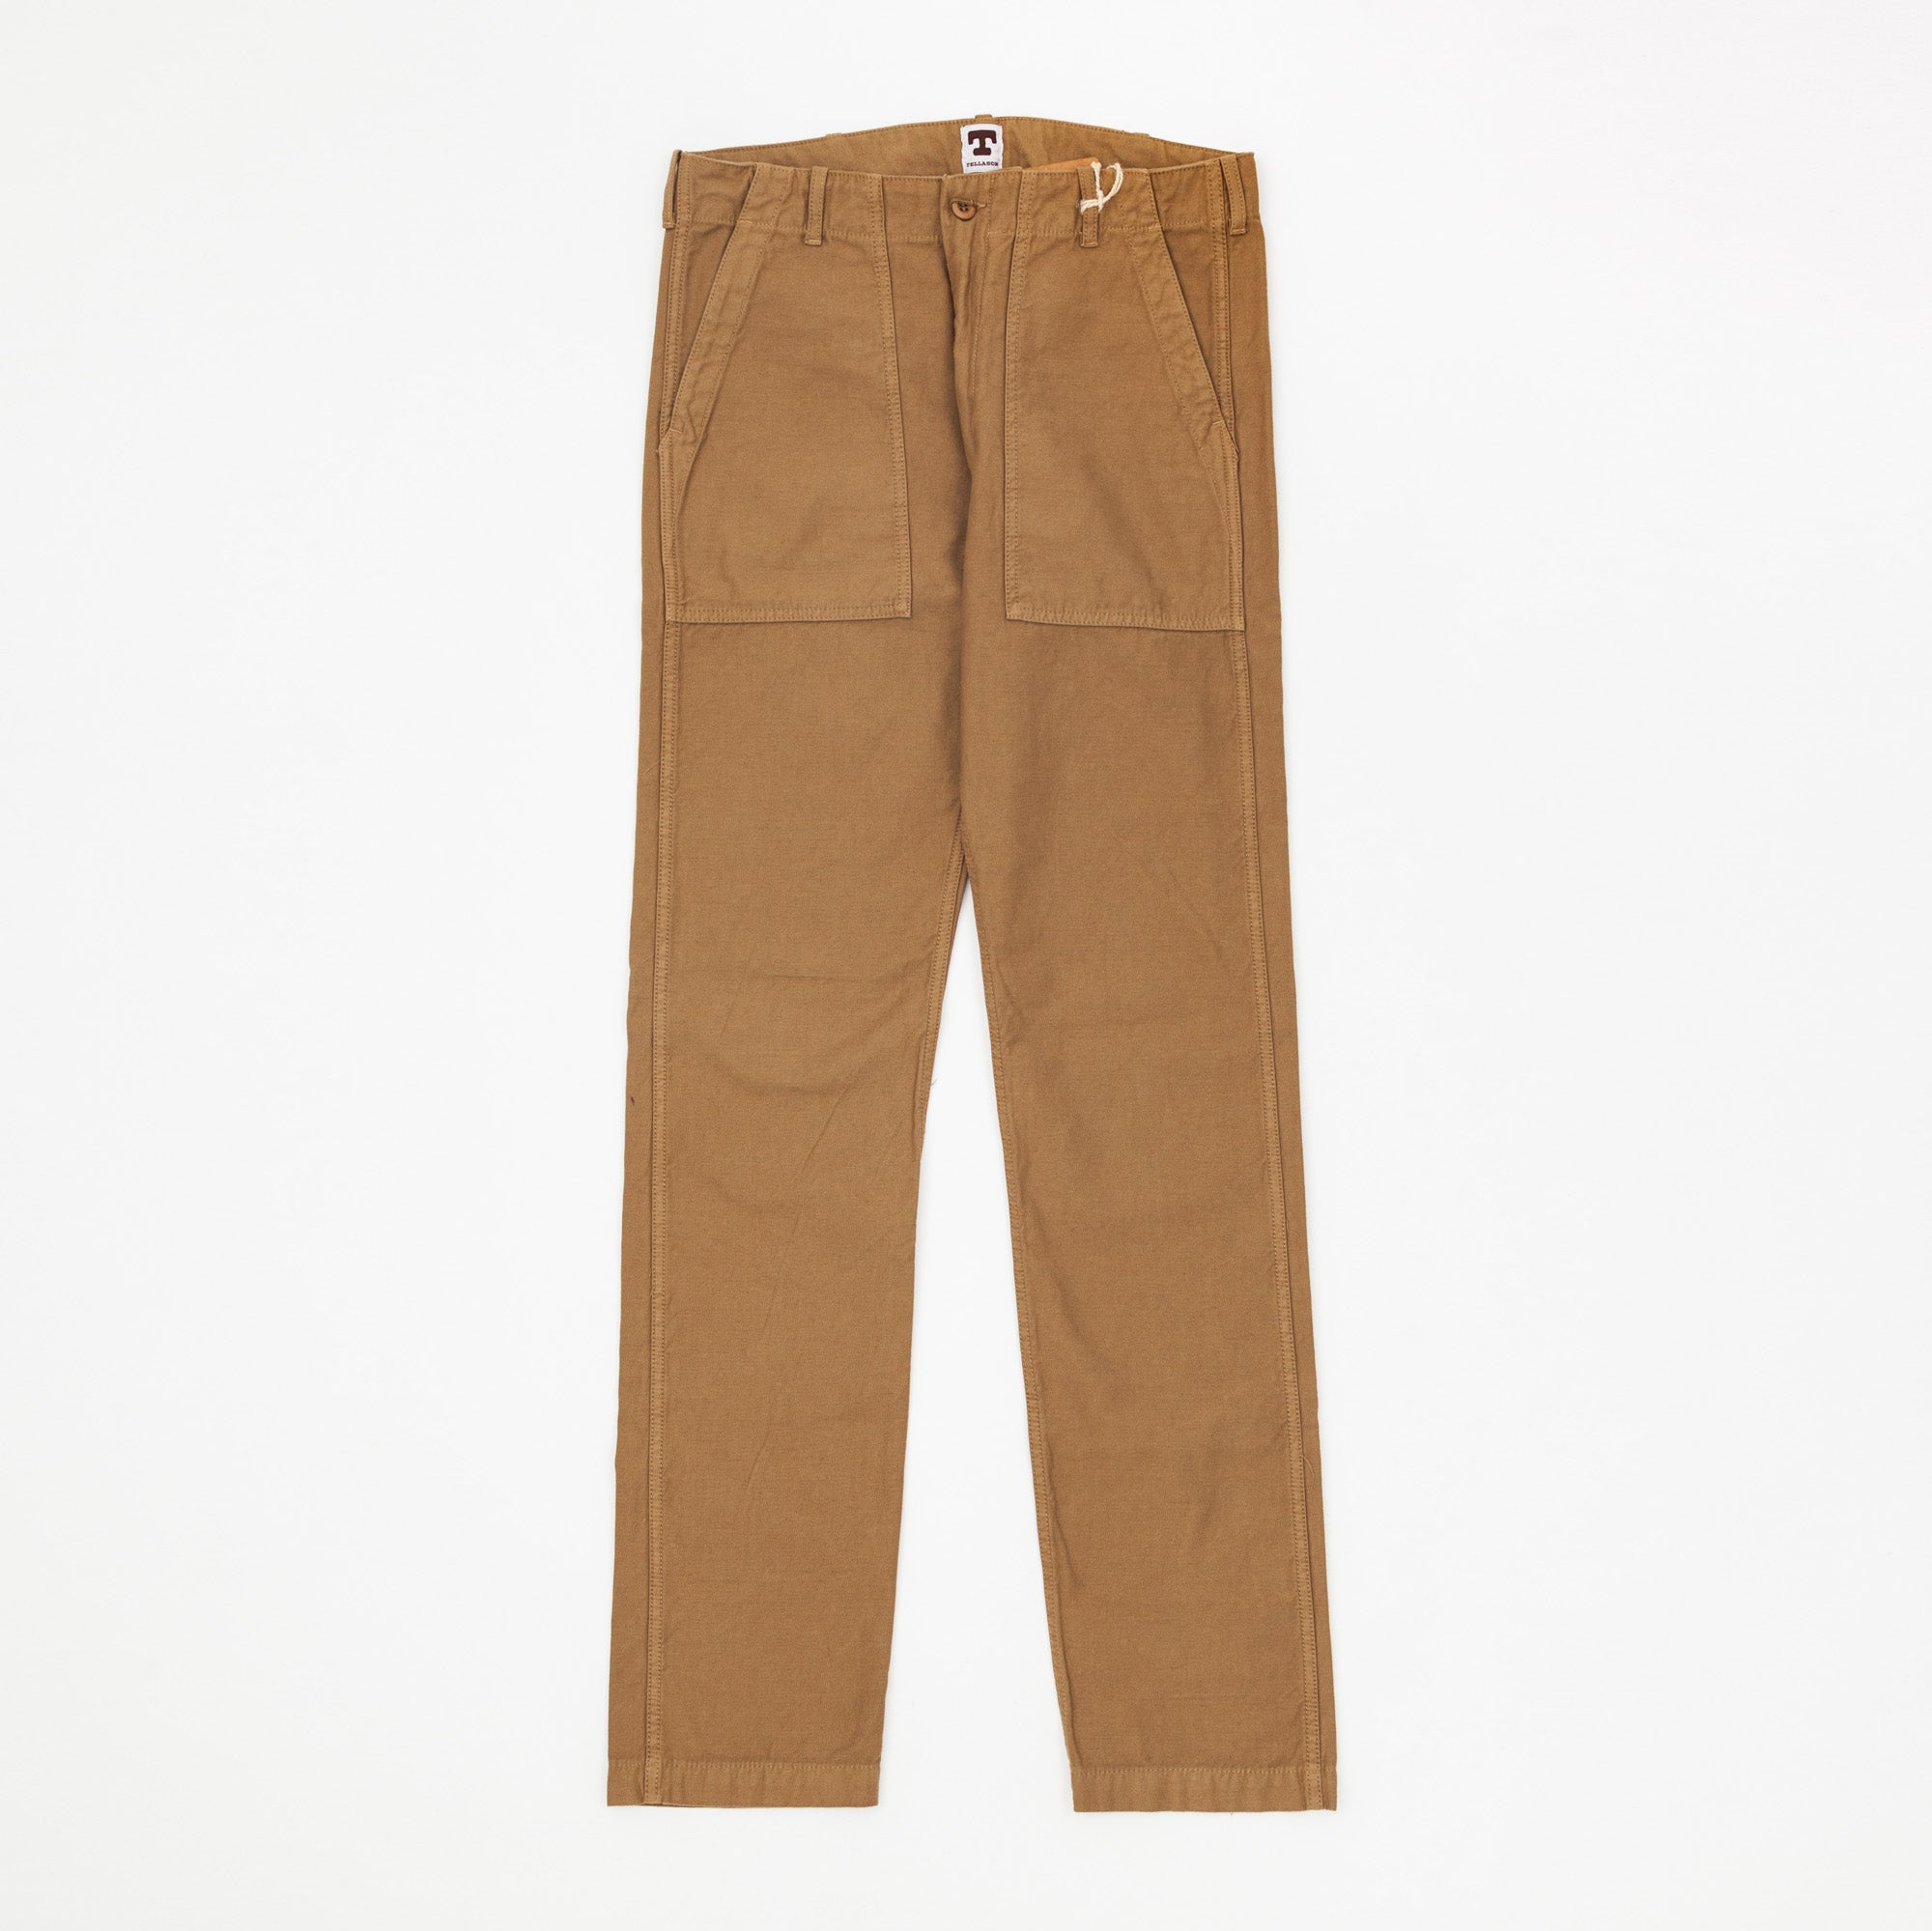 Fatigue Trousers